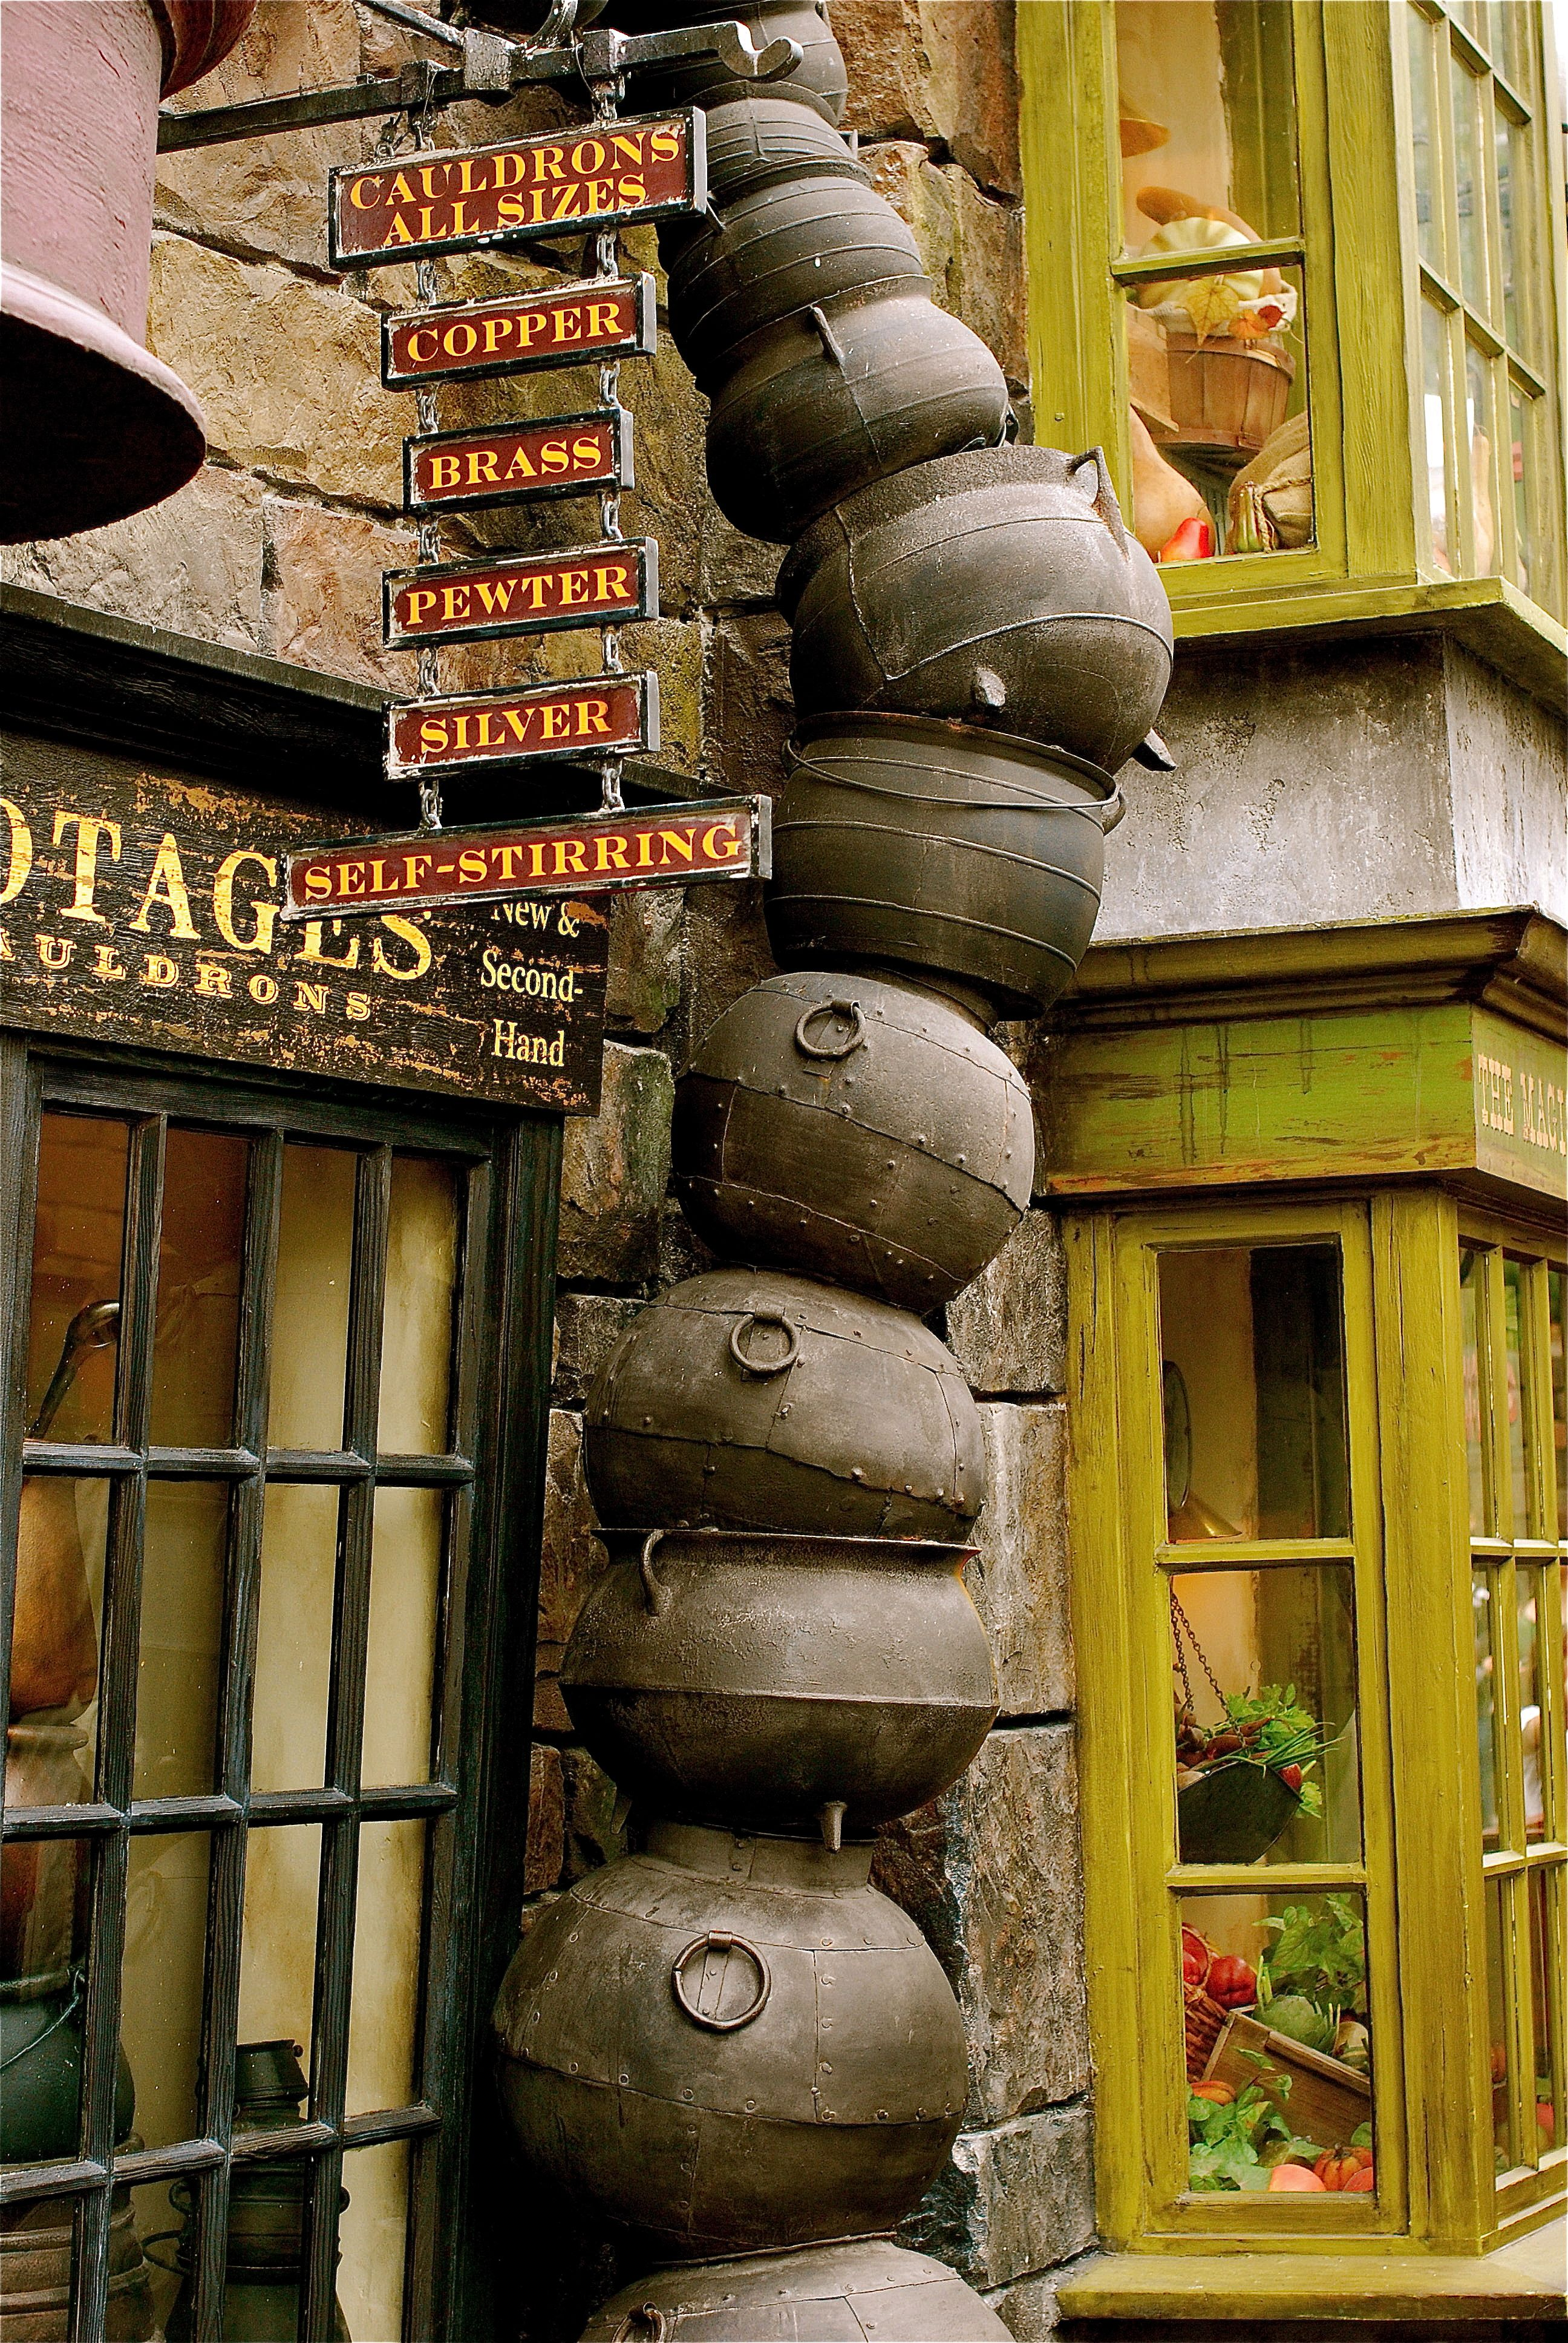 cauldron stack outside potages at diagon alley universal studios florida ohh randomness. Black Bedroom Furniture Sets. Home Design Ideas